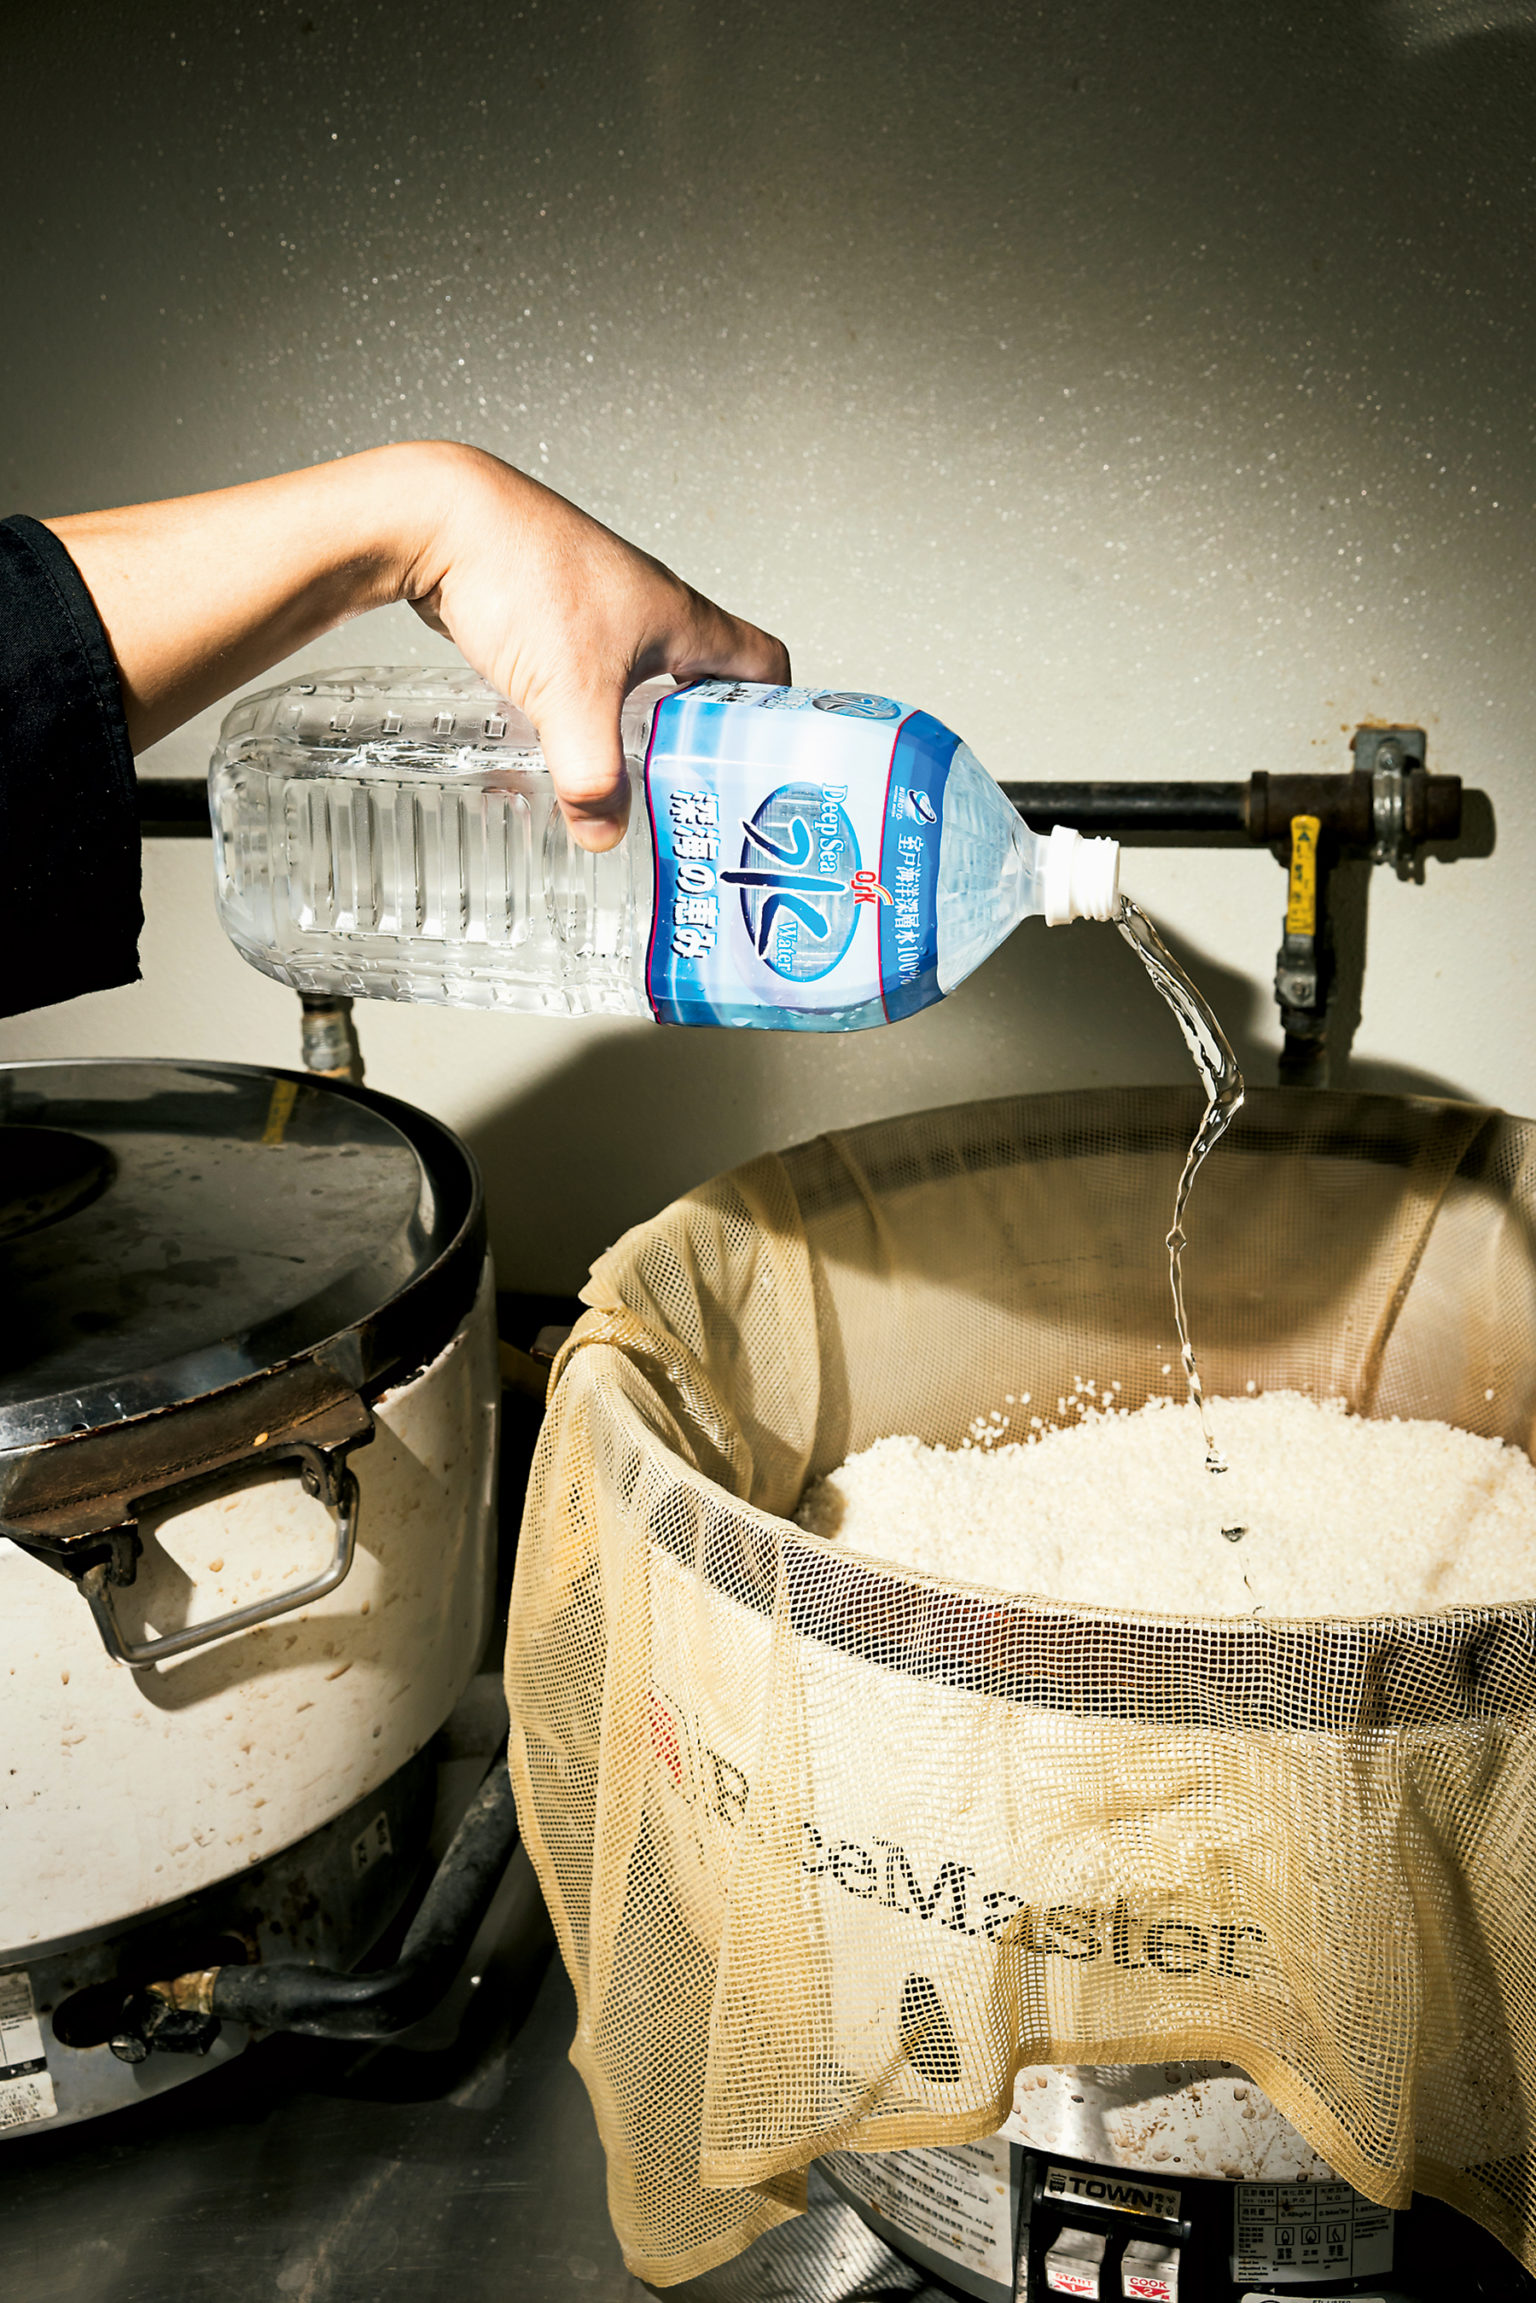 Kobo imports 1,200 bottles of deep-sea water from Japan every three months. The chefs say the neutral, softer water makes the rice—like New York bagels—better.